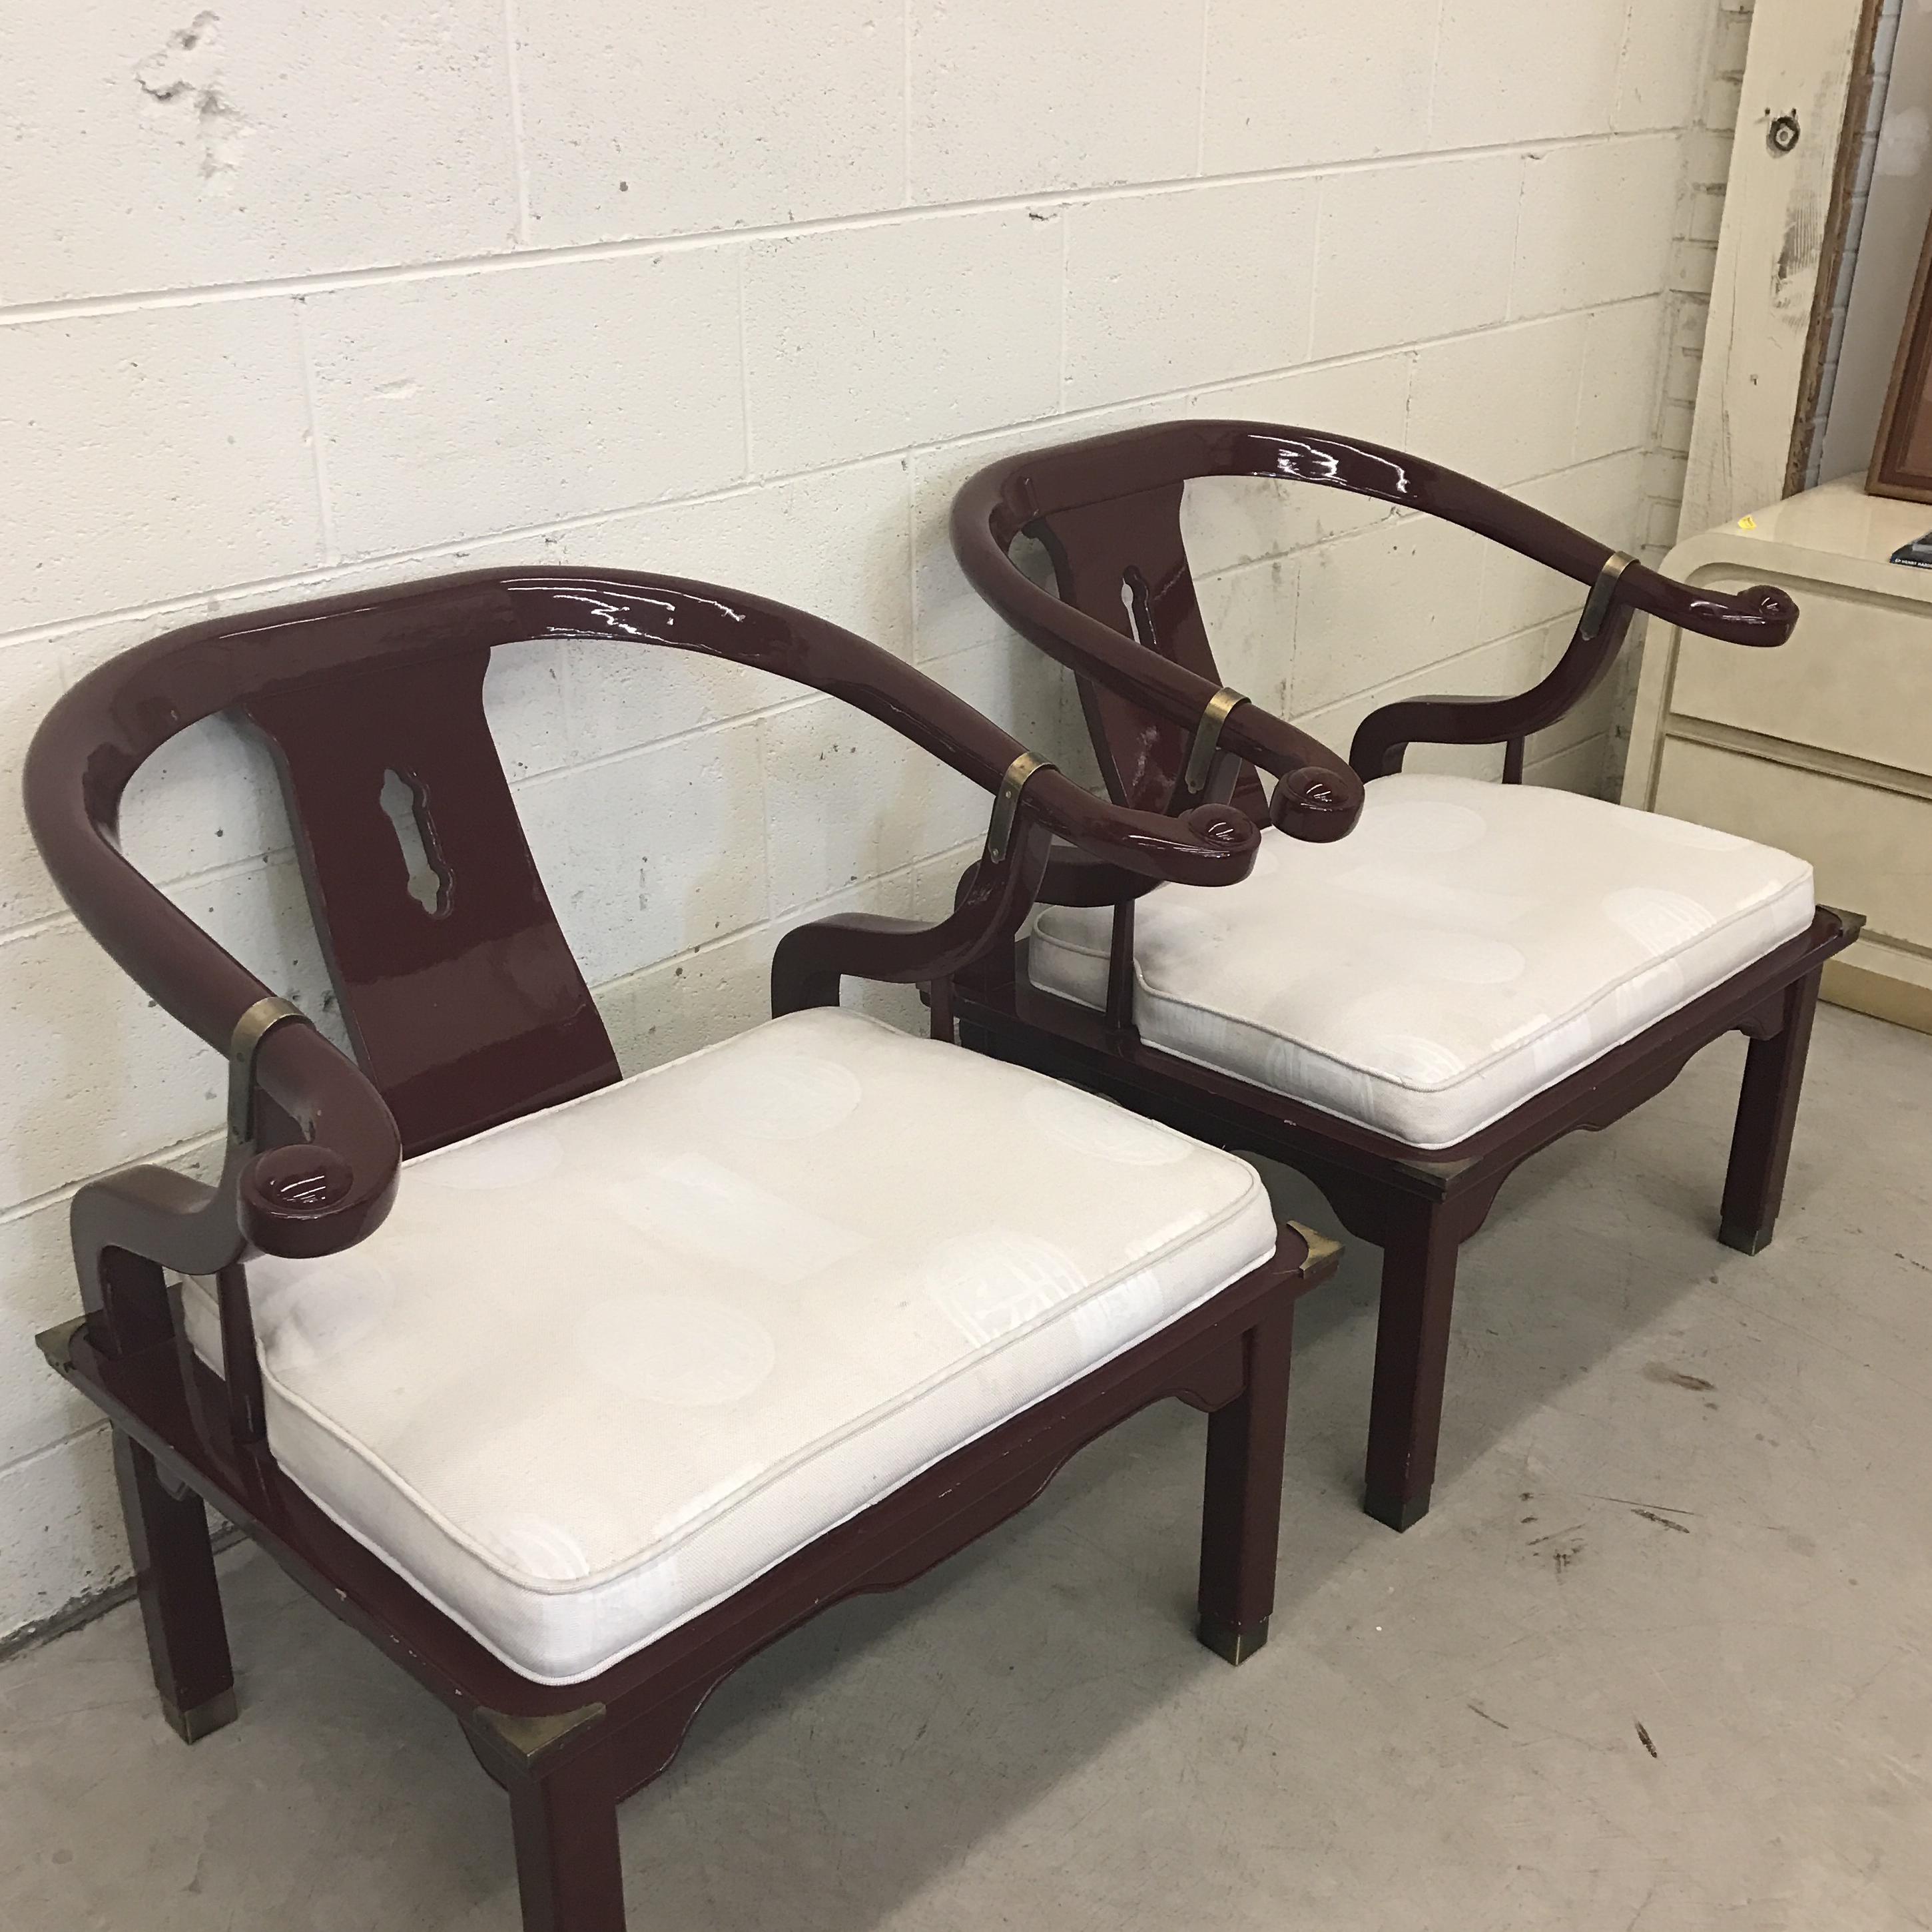 laquered furniture antique century furniture asian ming horseshoe back lacquered chairs pair for sale image chairish